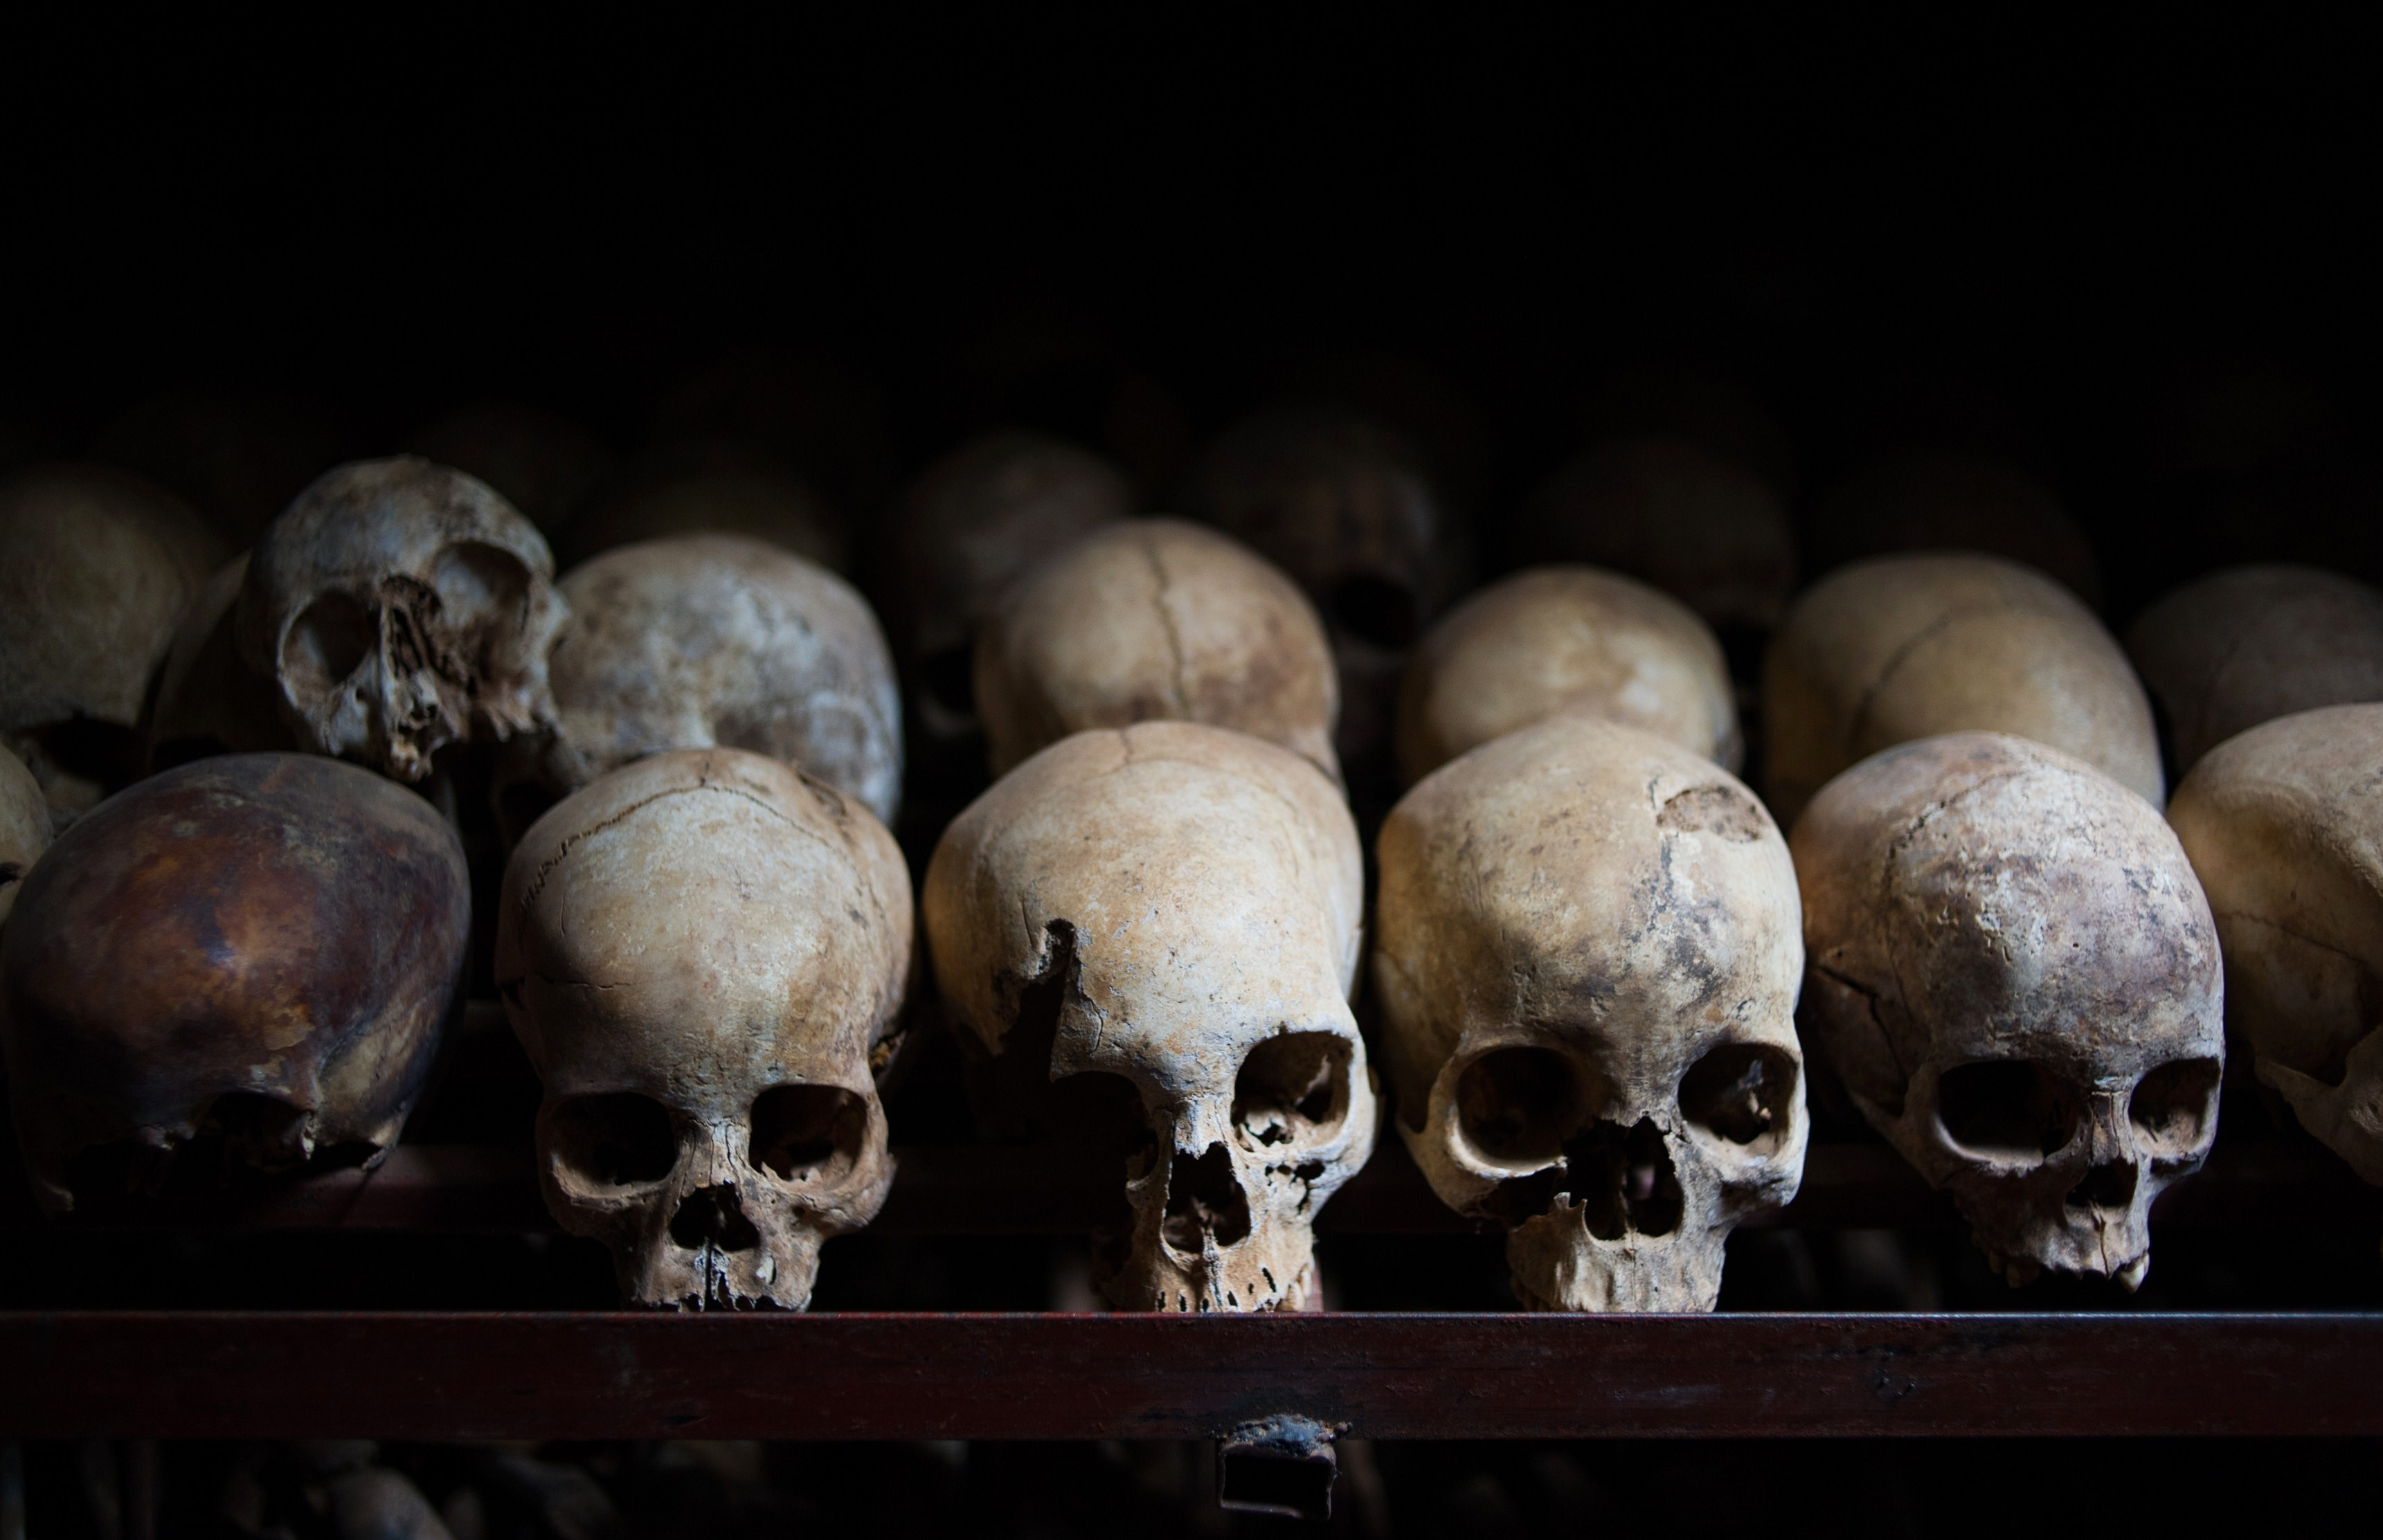 TO GO WITH AFP STORY BY HANNAH MCNEISH This photo taken on March 12, 2014, shows the skulls of victims killed during the Rwandan genocide, laid out in the Nyamata Church in Nyamata, Rwanda. Nyamata and the surrounding area suffered some of the worst violence during the 1994 Genocide Against the Tutsi, with thousands of people killed in and around the church, which now stands as a memorial to the genocide.  A survey showed that 26 percent of the Rwandan population suffers from post-traumatic stress disorder, yet the country lacks the adequate mental health facilities needed to address this issue.  AFP PHOTO / PHIL MOORE        (Photo credit should read PHIL MOORE/AFP/Getty Images)